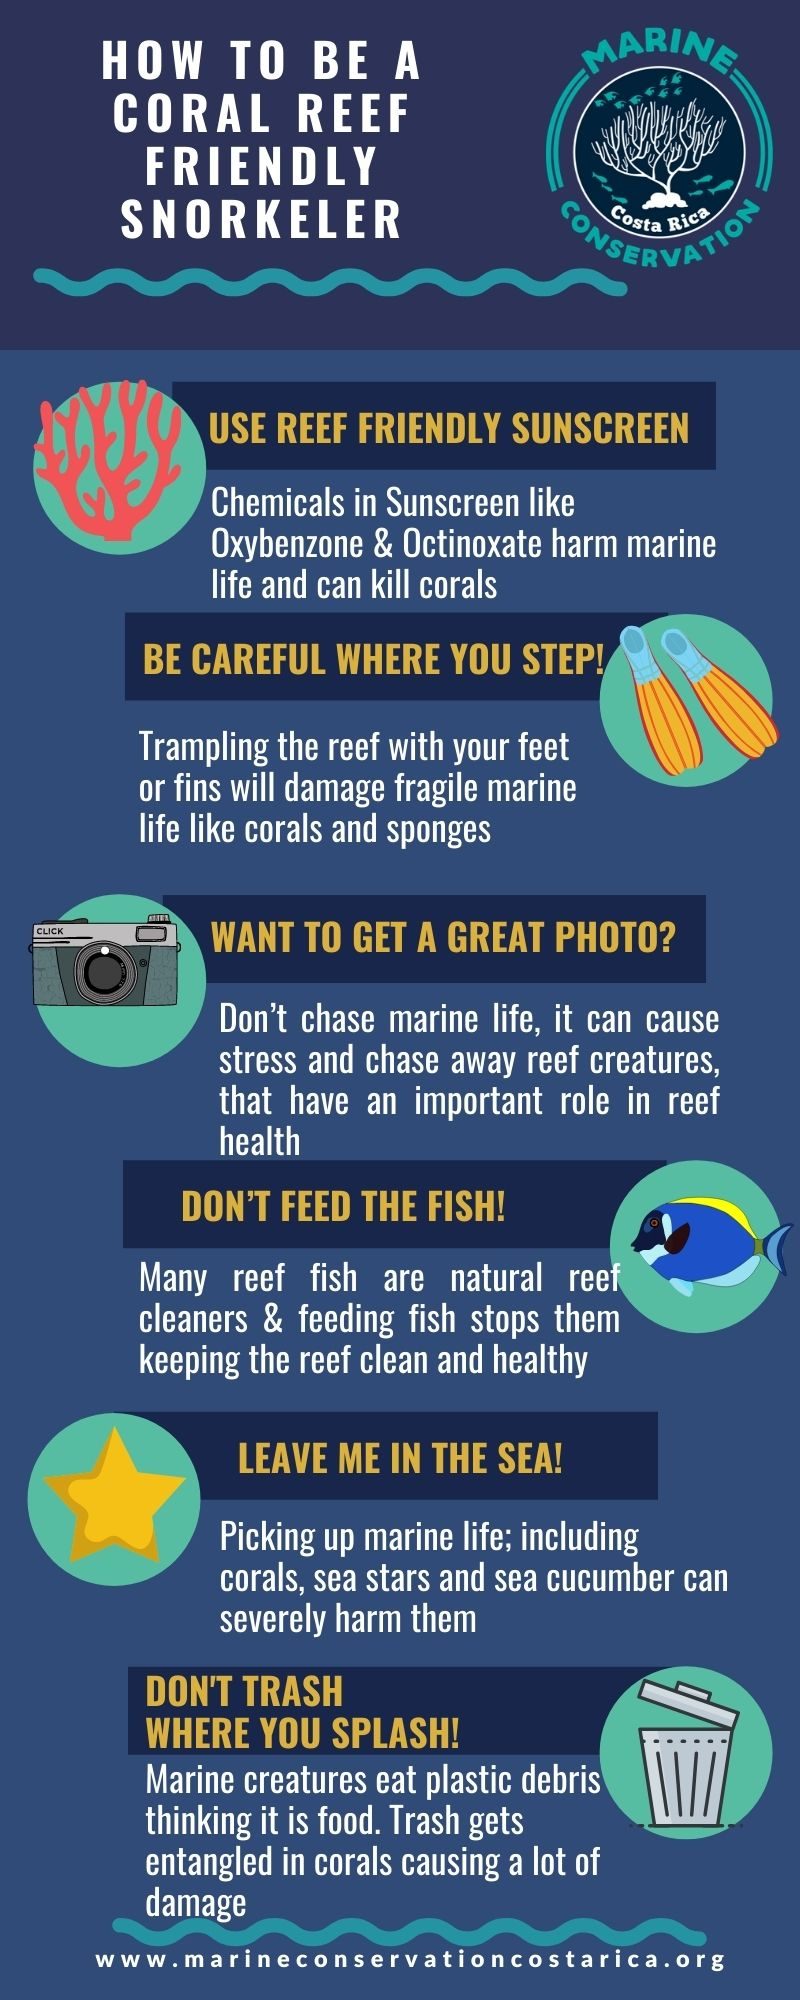 How to be a Coral Reef Friendly Snorkeler Infographic